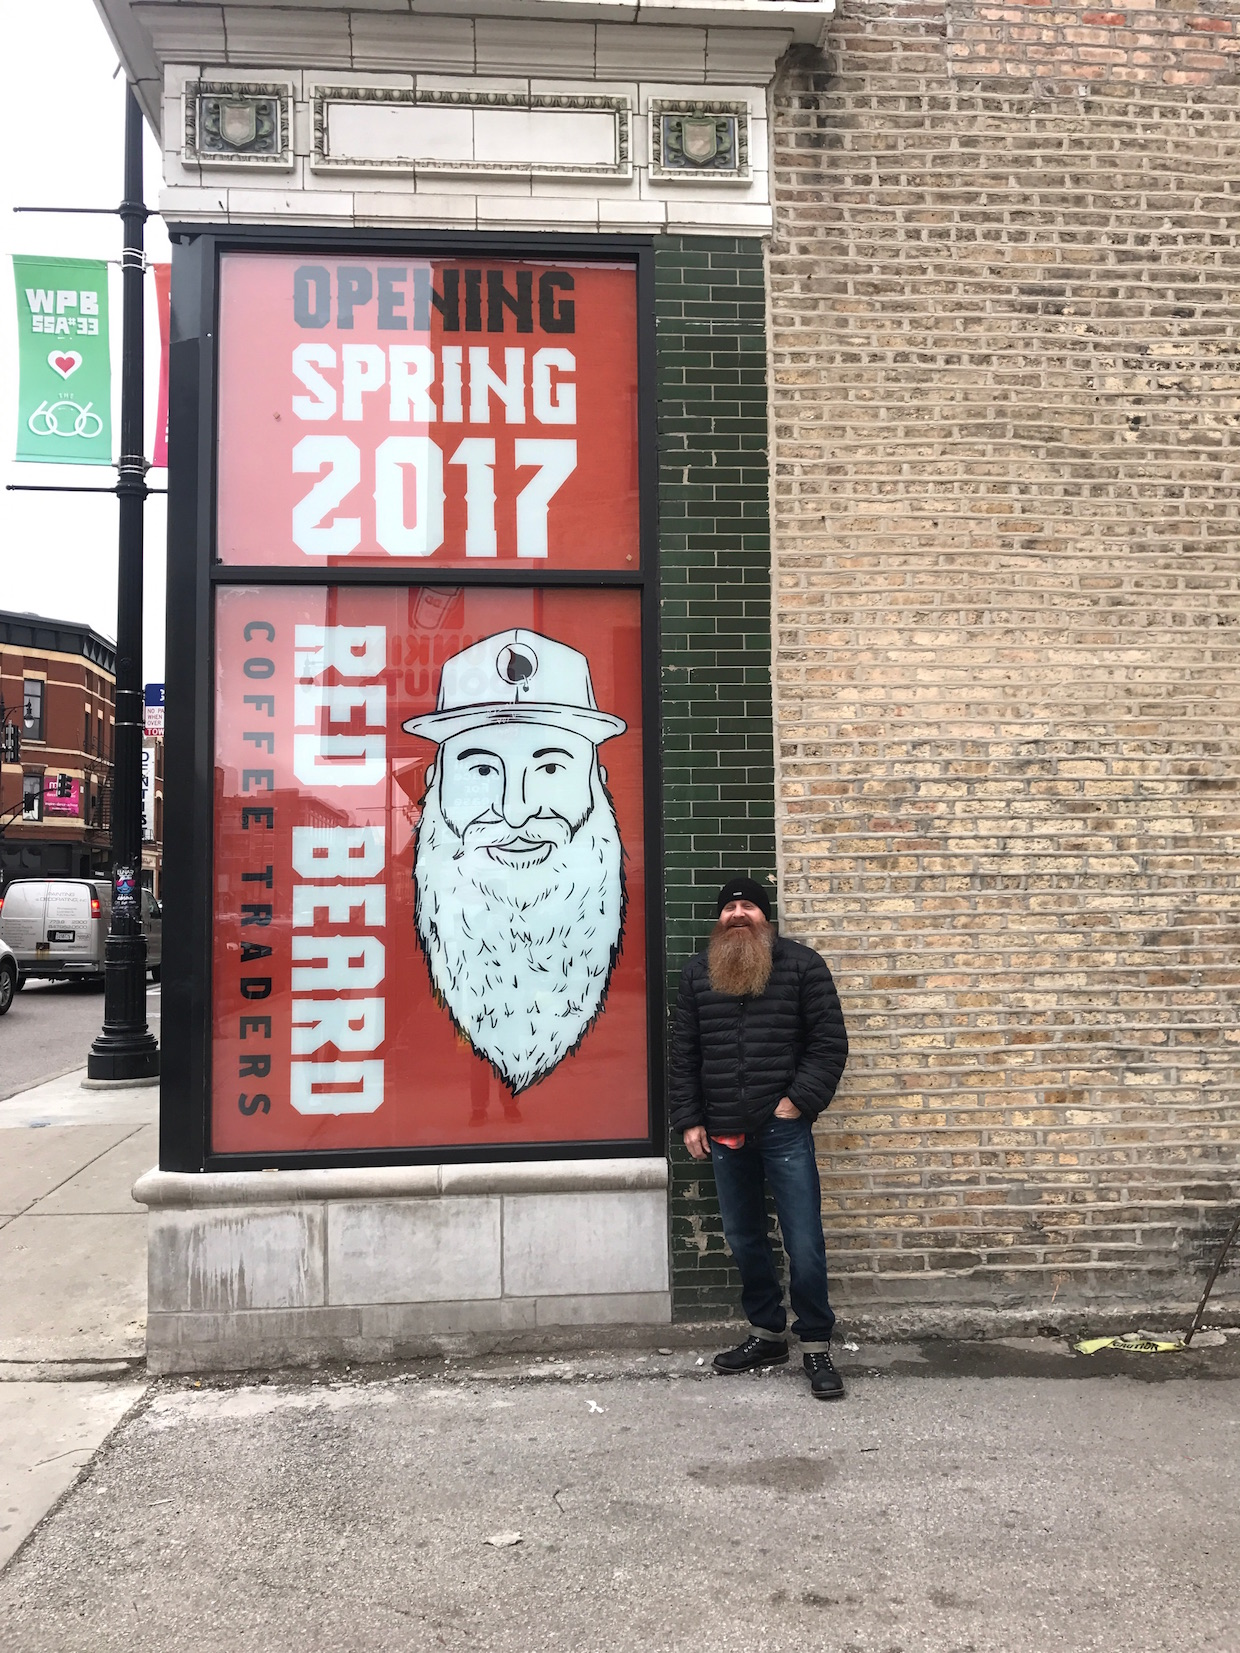 Steve Sims and Marcus Lemonis to Launch Red Beard Coffee in